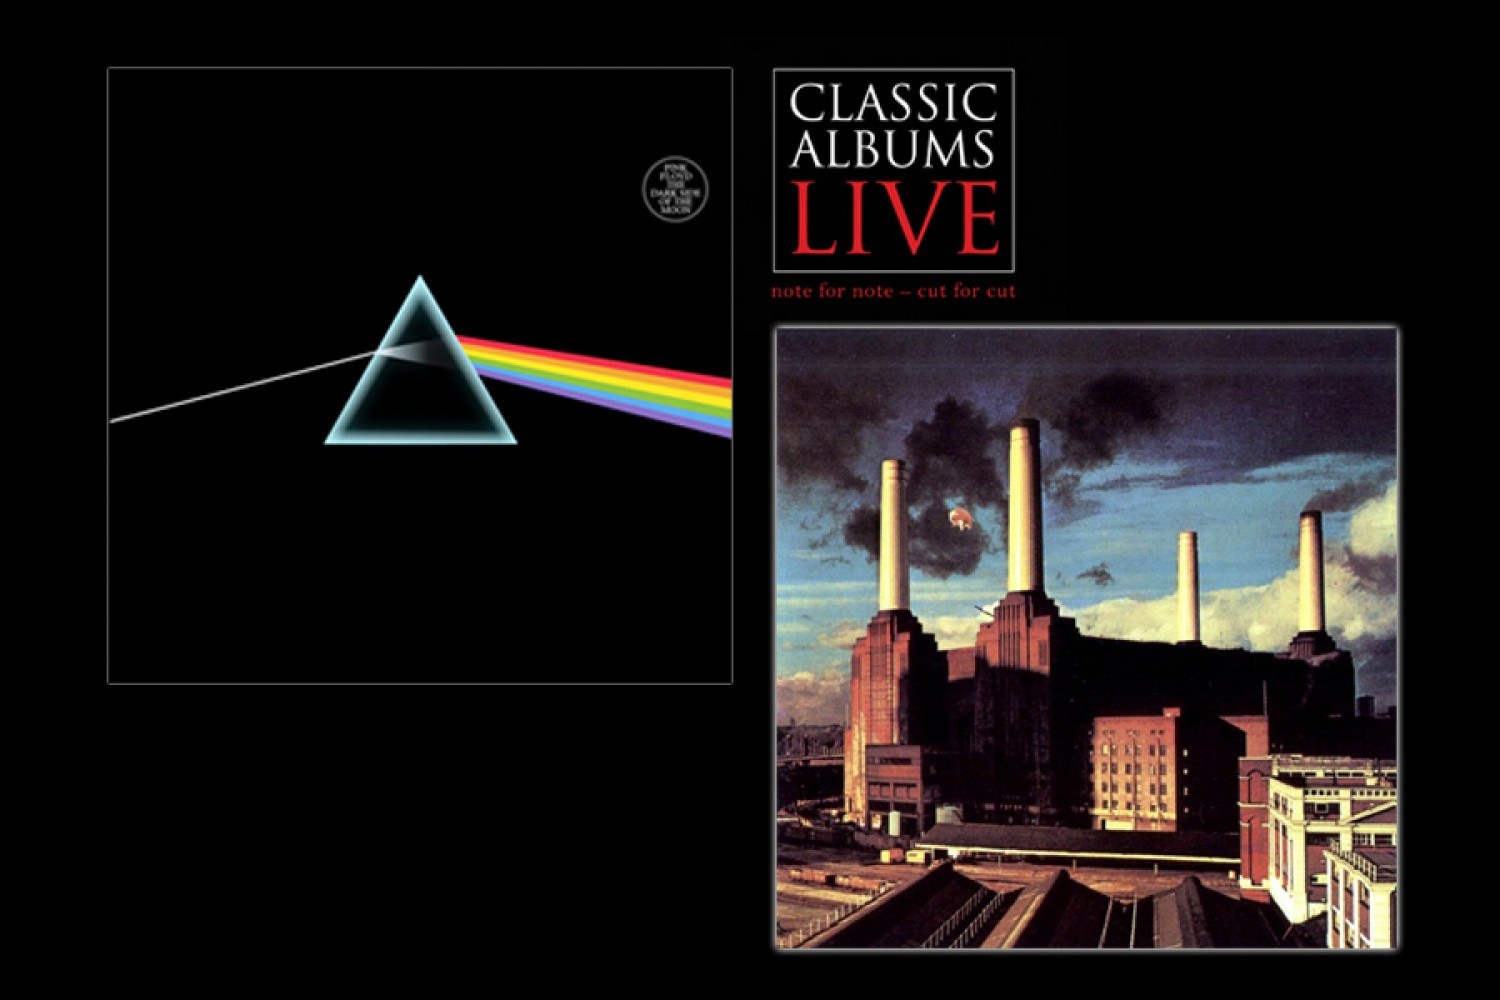 Pink floyd animals - Classic Albums Live Pink Floyd The Dark Side Of The Moon Animals